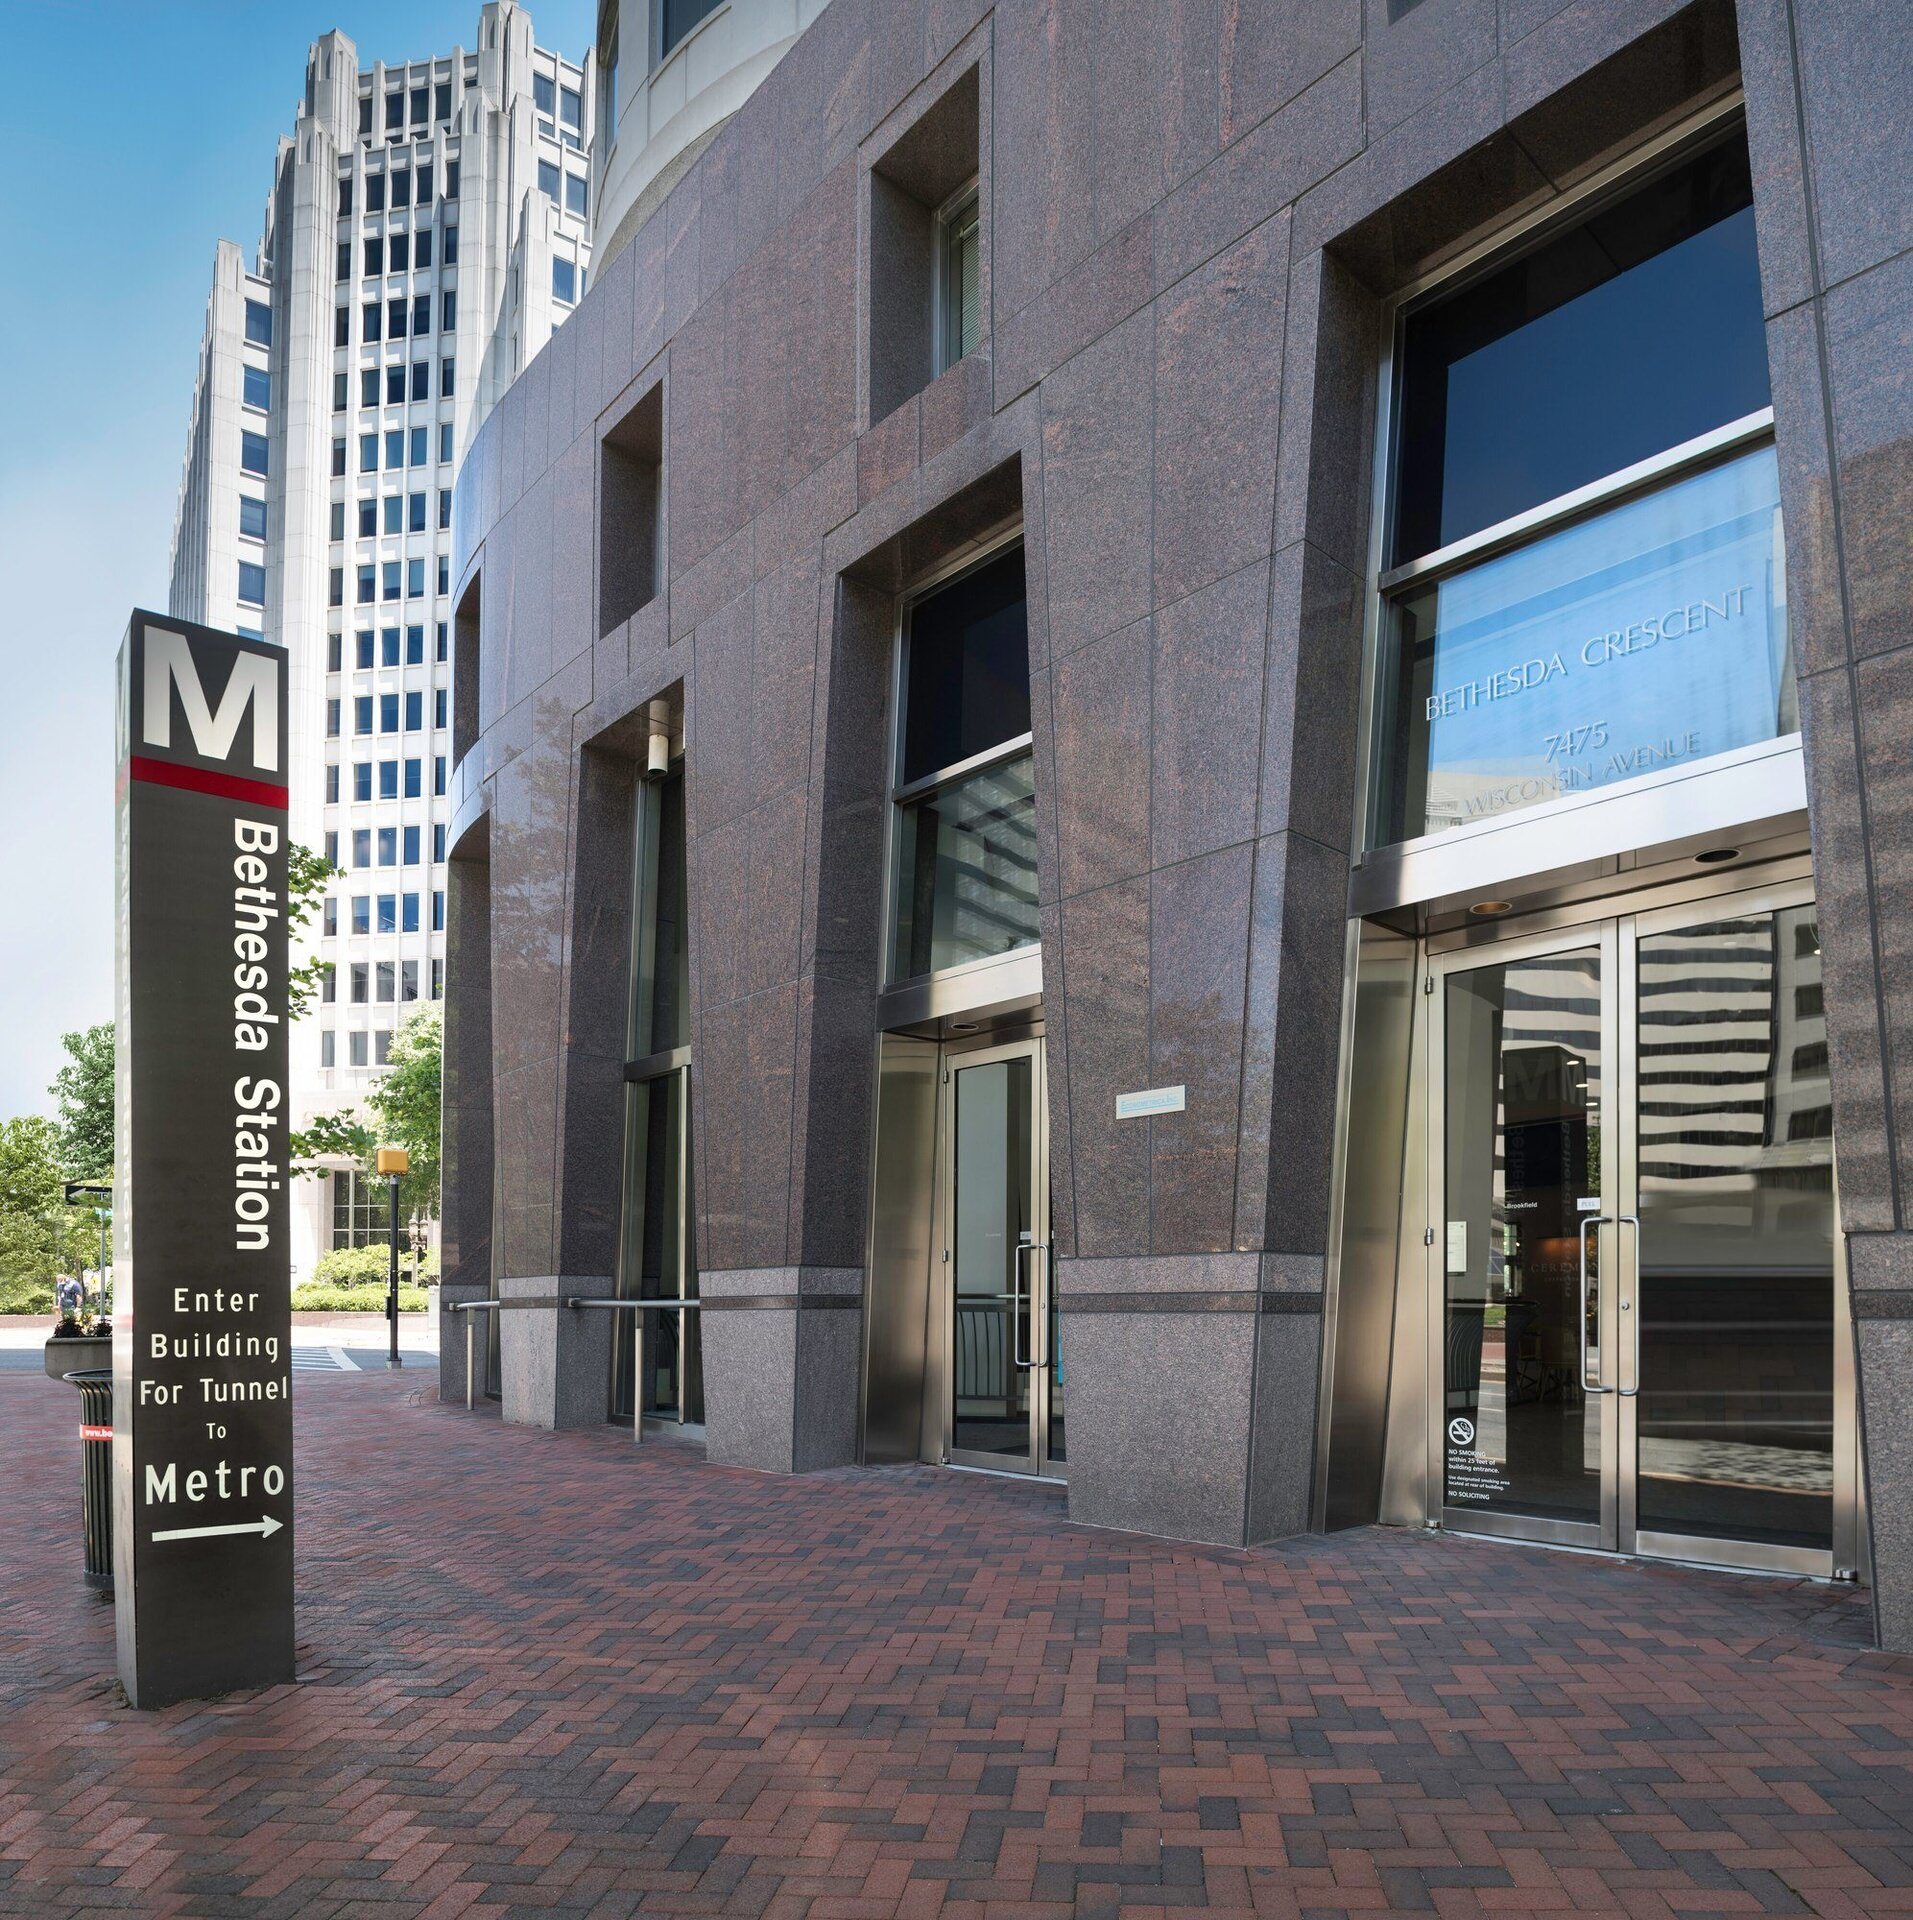 """Entrance to a building with a sign that says """"M Bethesda Station Enter Building for Tunnel to Metro"""". The sign has an arrow that points to the building."""